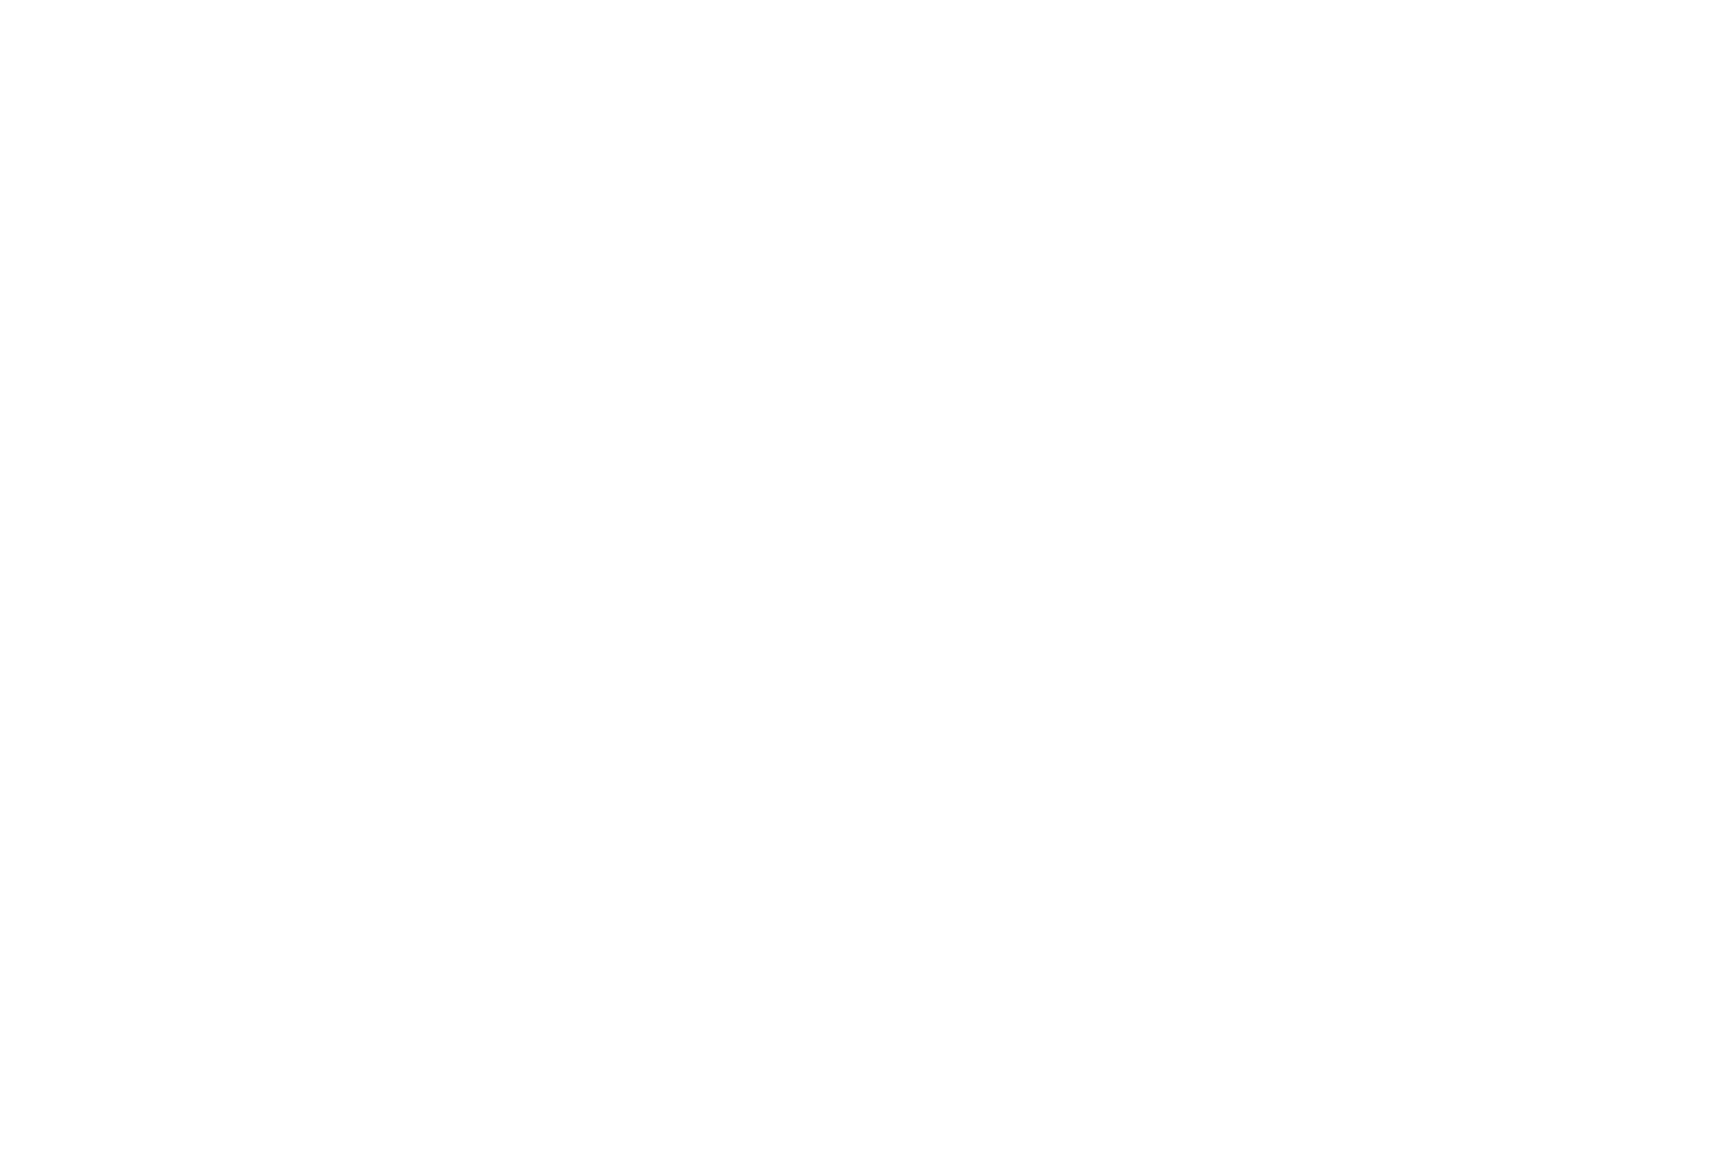 OFFICIAL SELECTION - 3rd Jaipur Film Wor